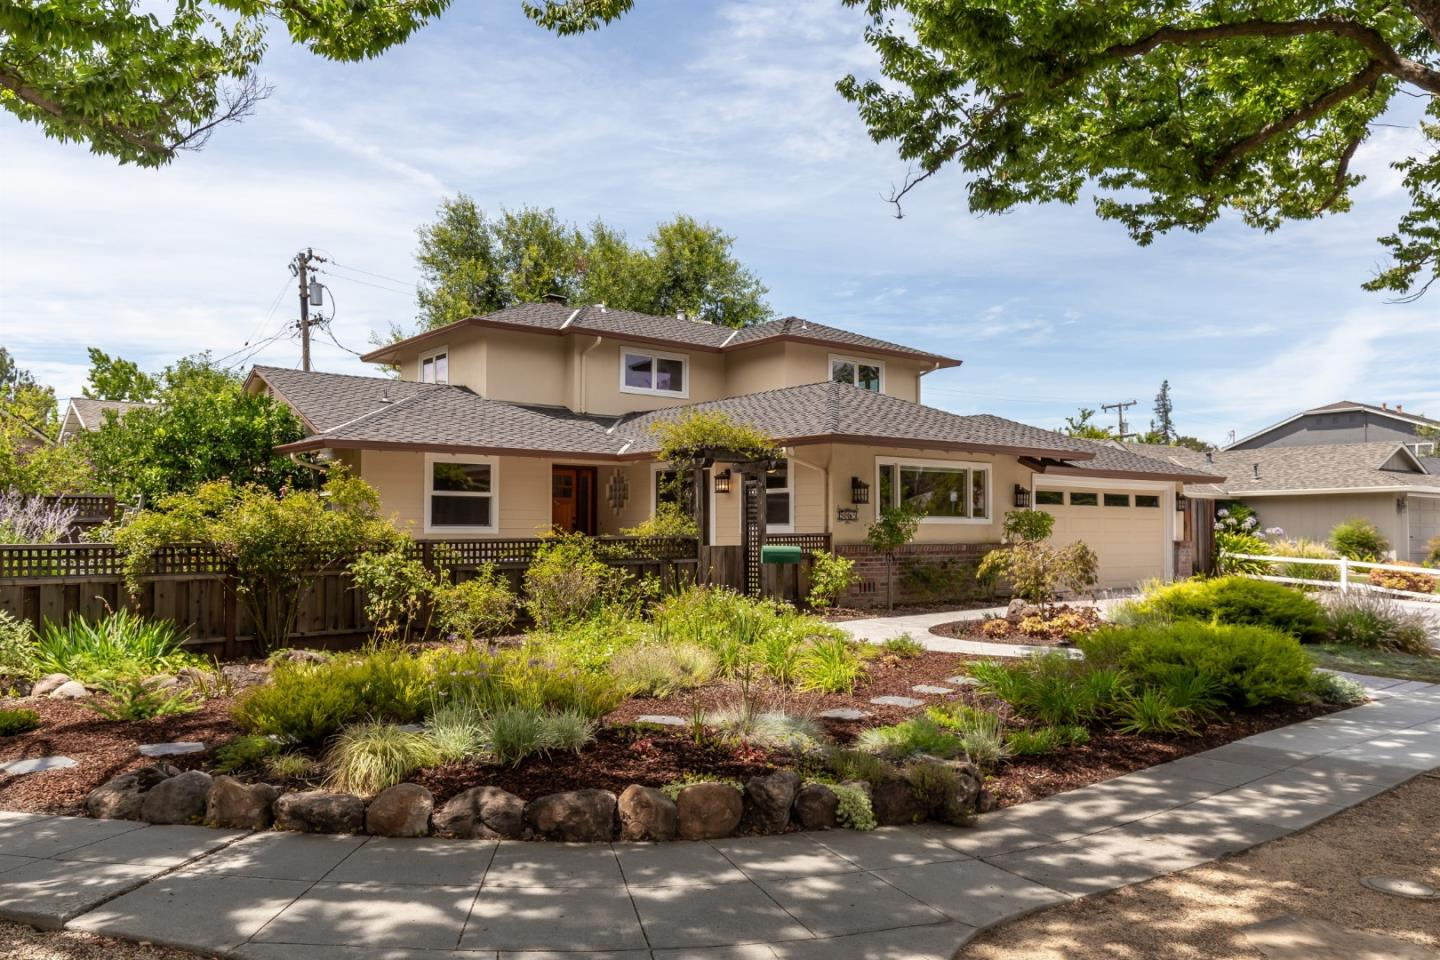 Detail Gallery Image 1 of 30 For 5085 Bel Canto Dr, San Jose, CA 95124 - 5 Beds   3 Baths